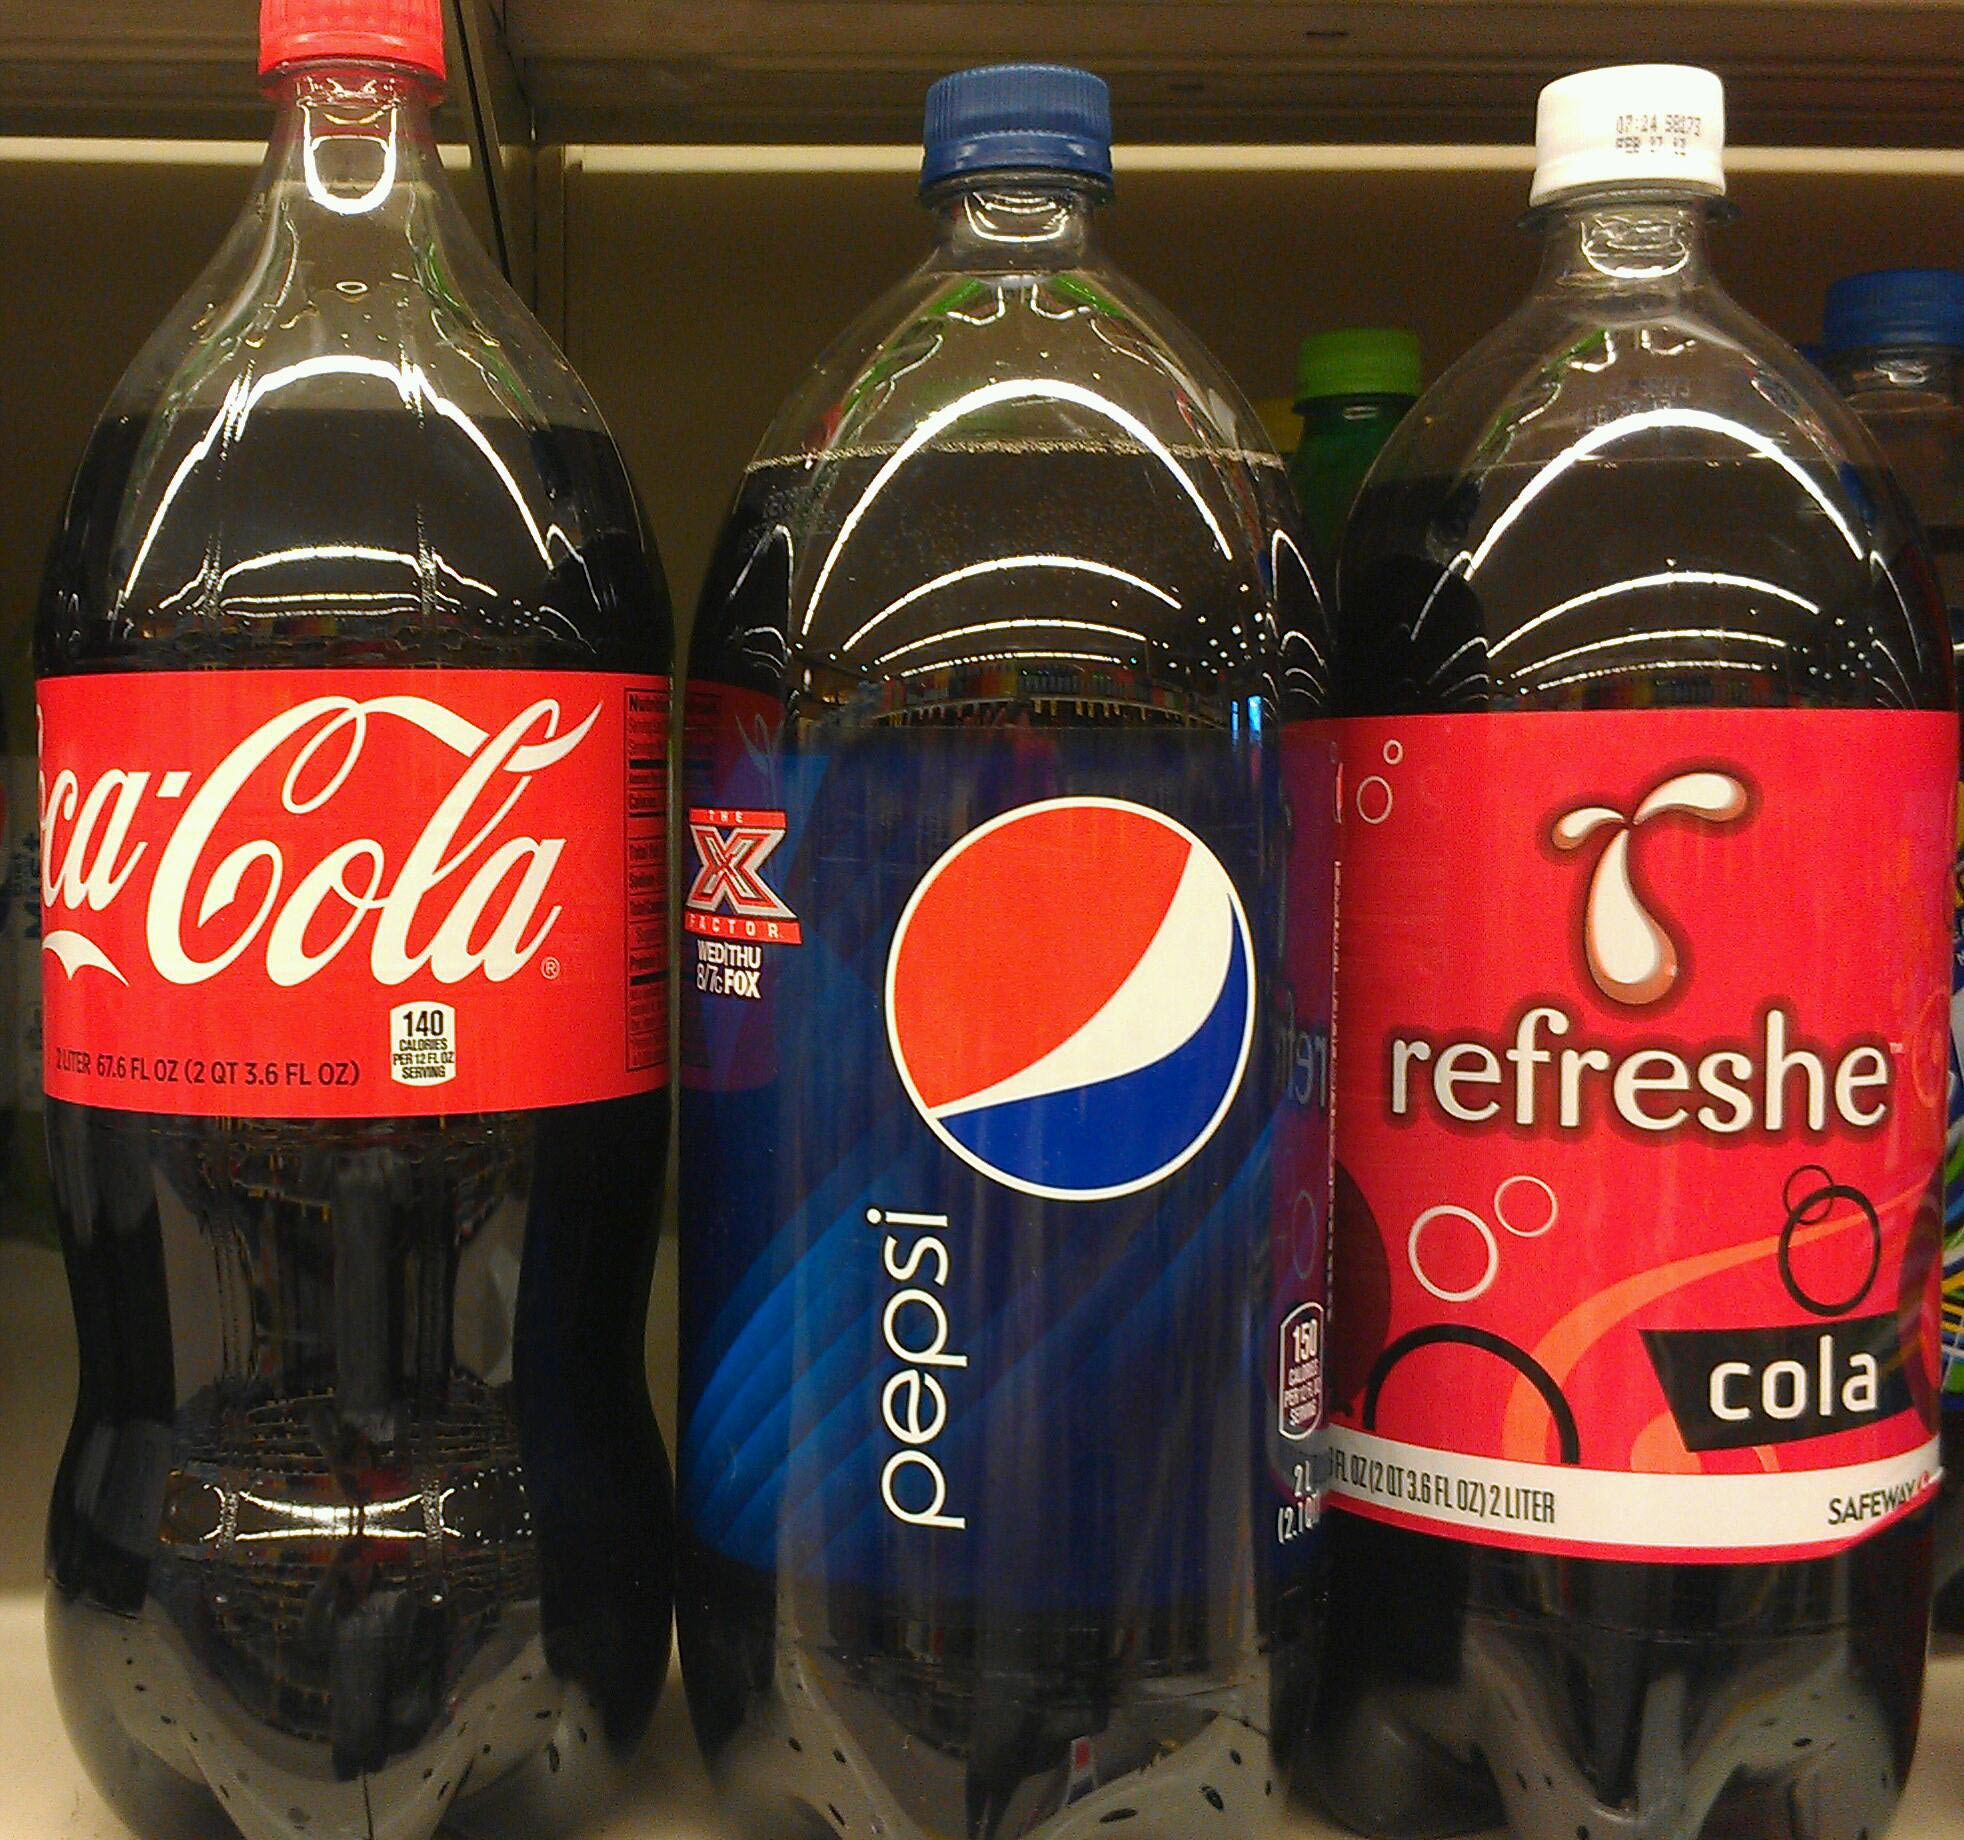 Caramel Coloring in Soda Products Potentially Carcinogenic